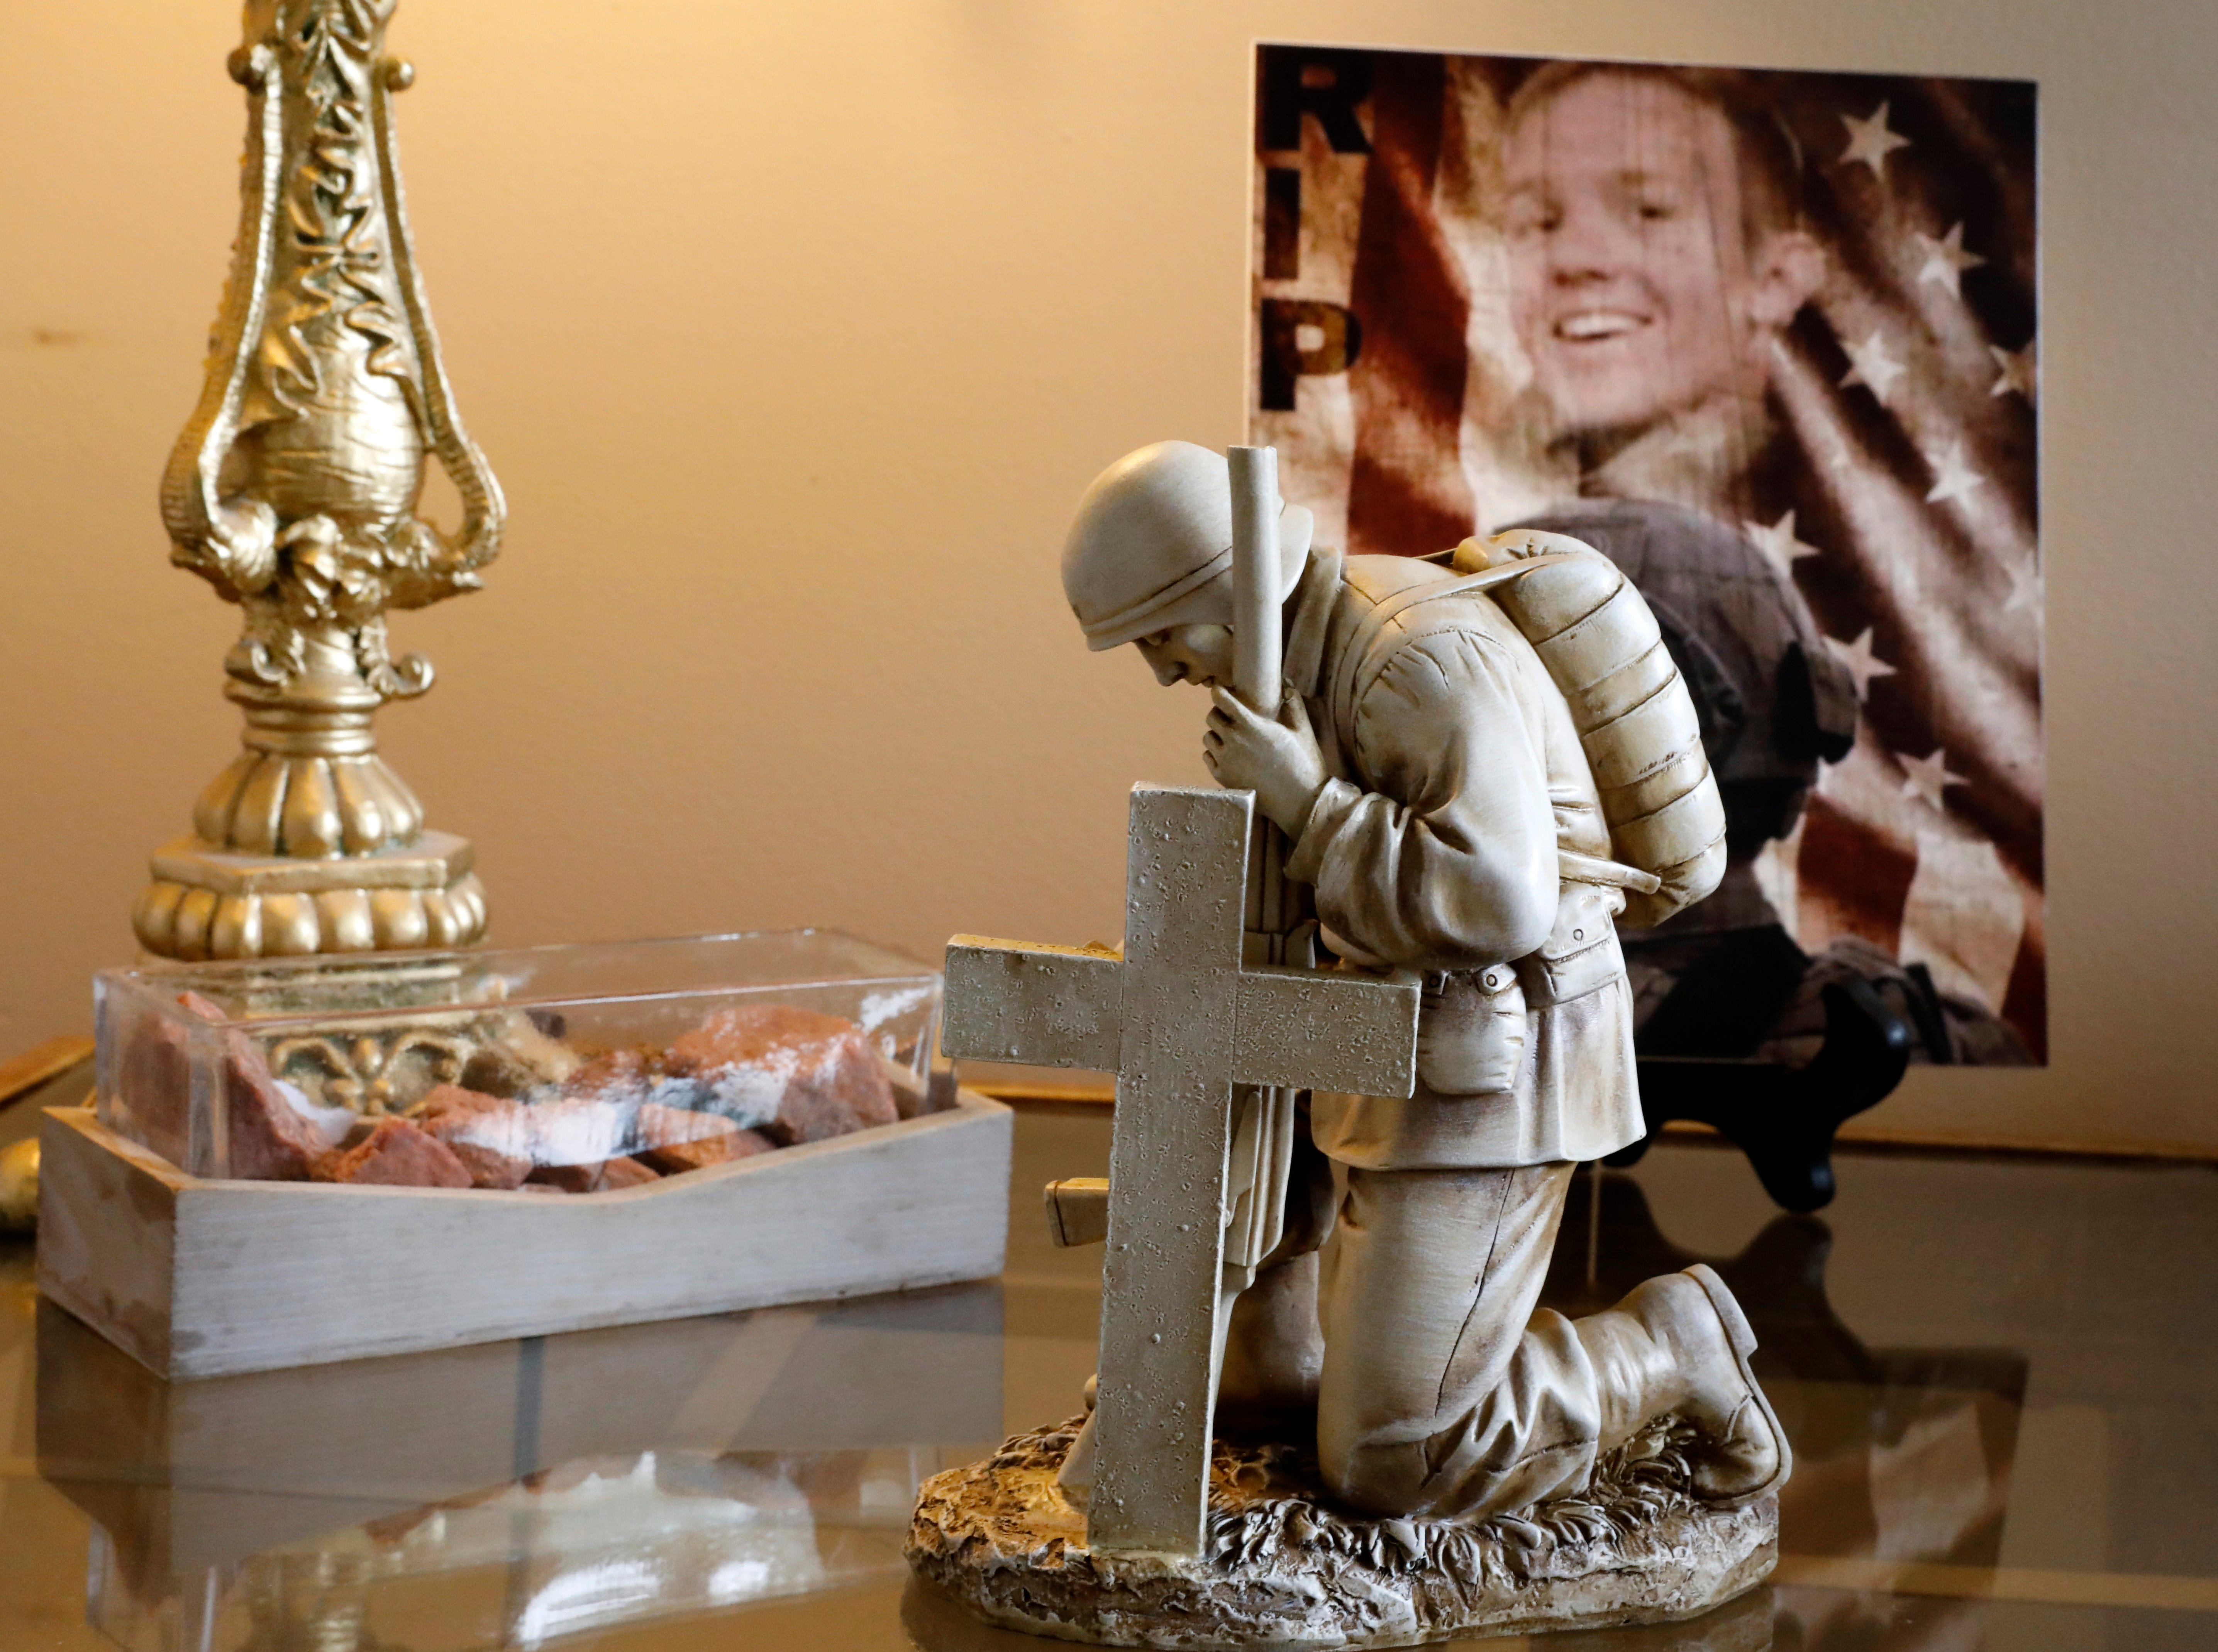 A statue of a soldier sits on an end table at Teri Mecionis house in Lancaster. Behind the statue is a photograph of Mecionis's son Army Sgt. Joseph Collette and rocks from Colorado were he was based.Collette was killed in Afghanistan in March.